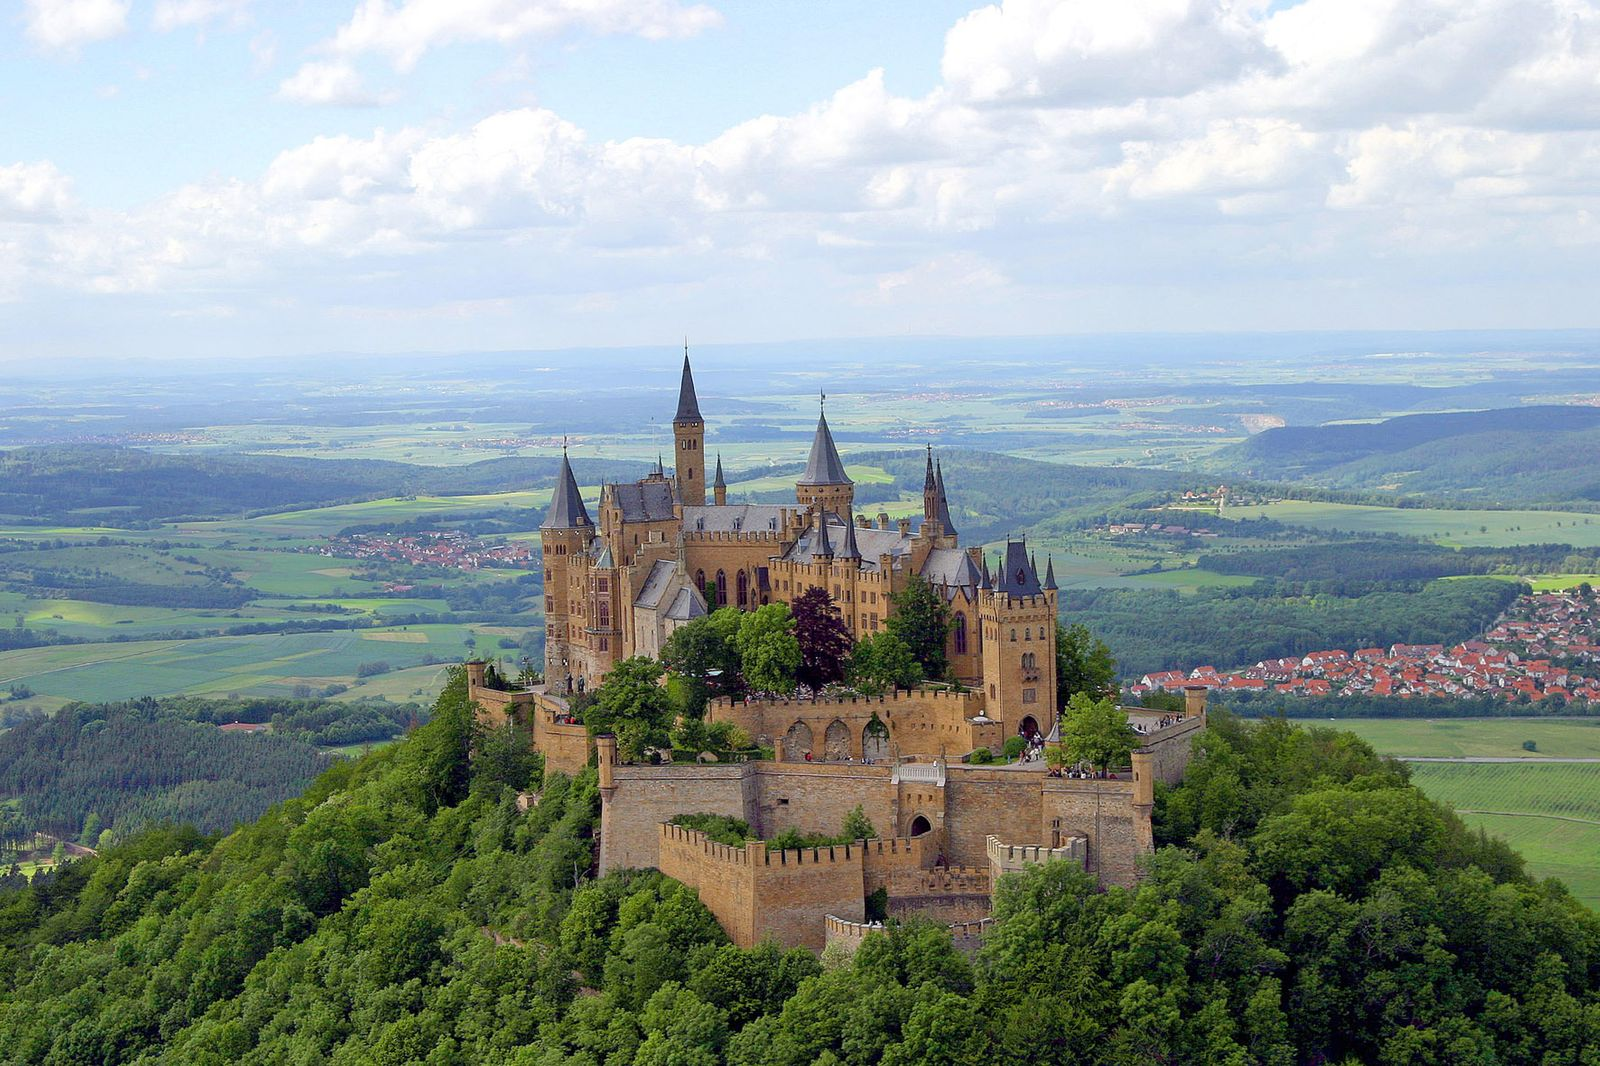 Burg Hohenzollern in Hechingen